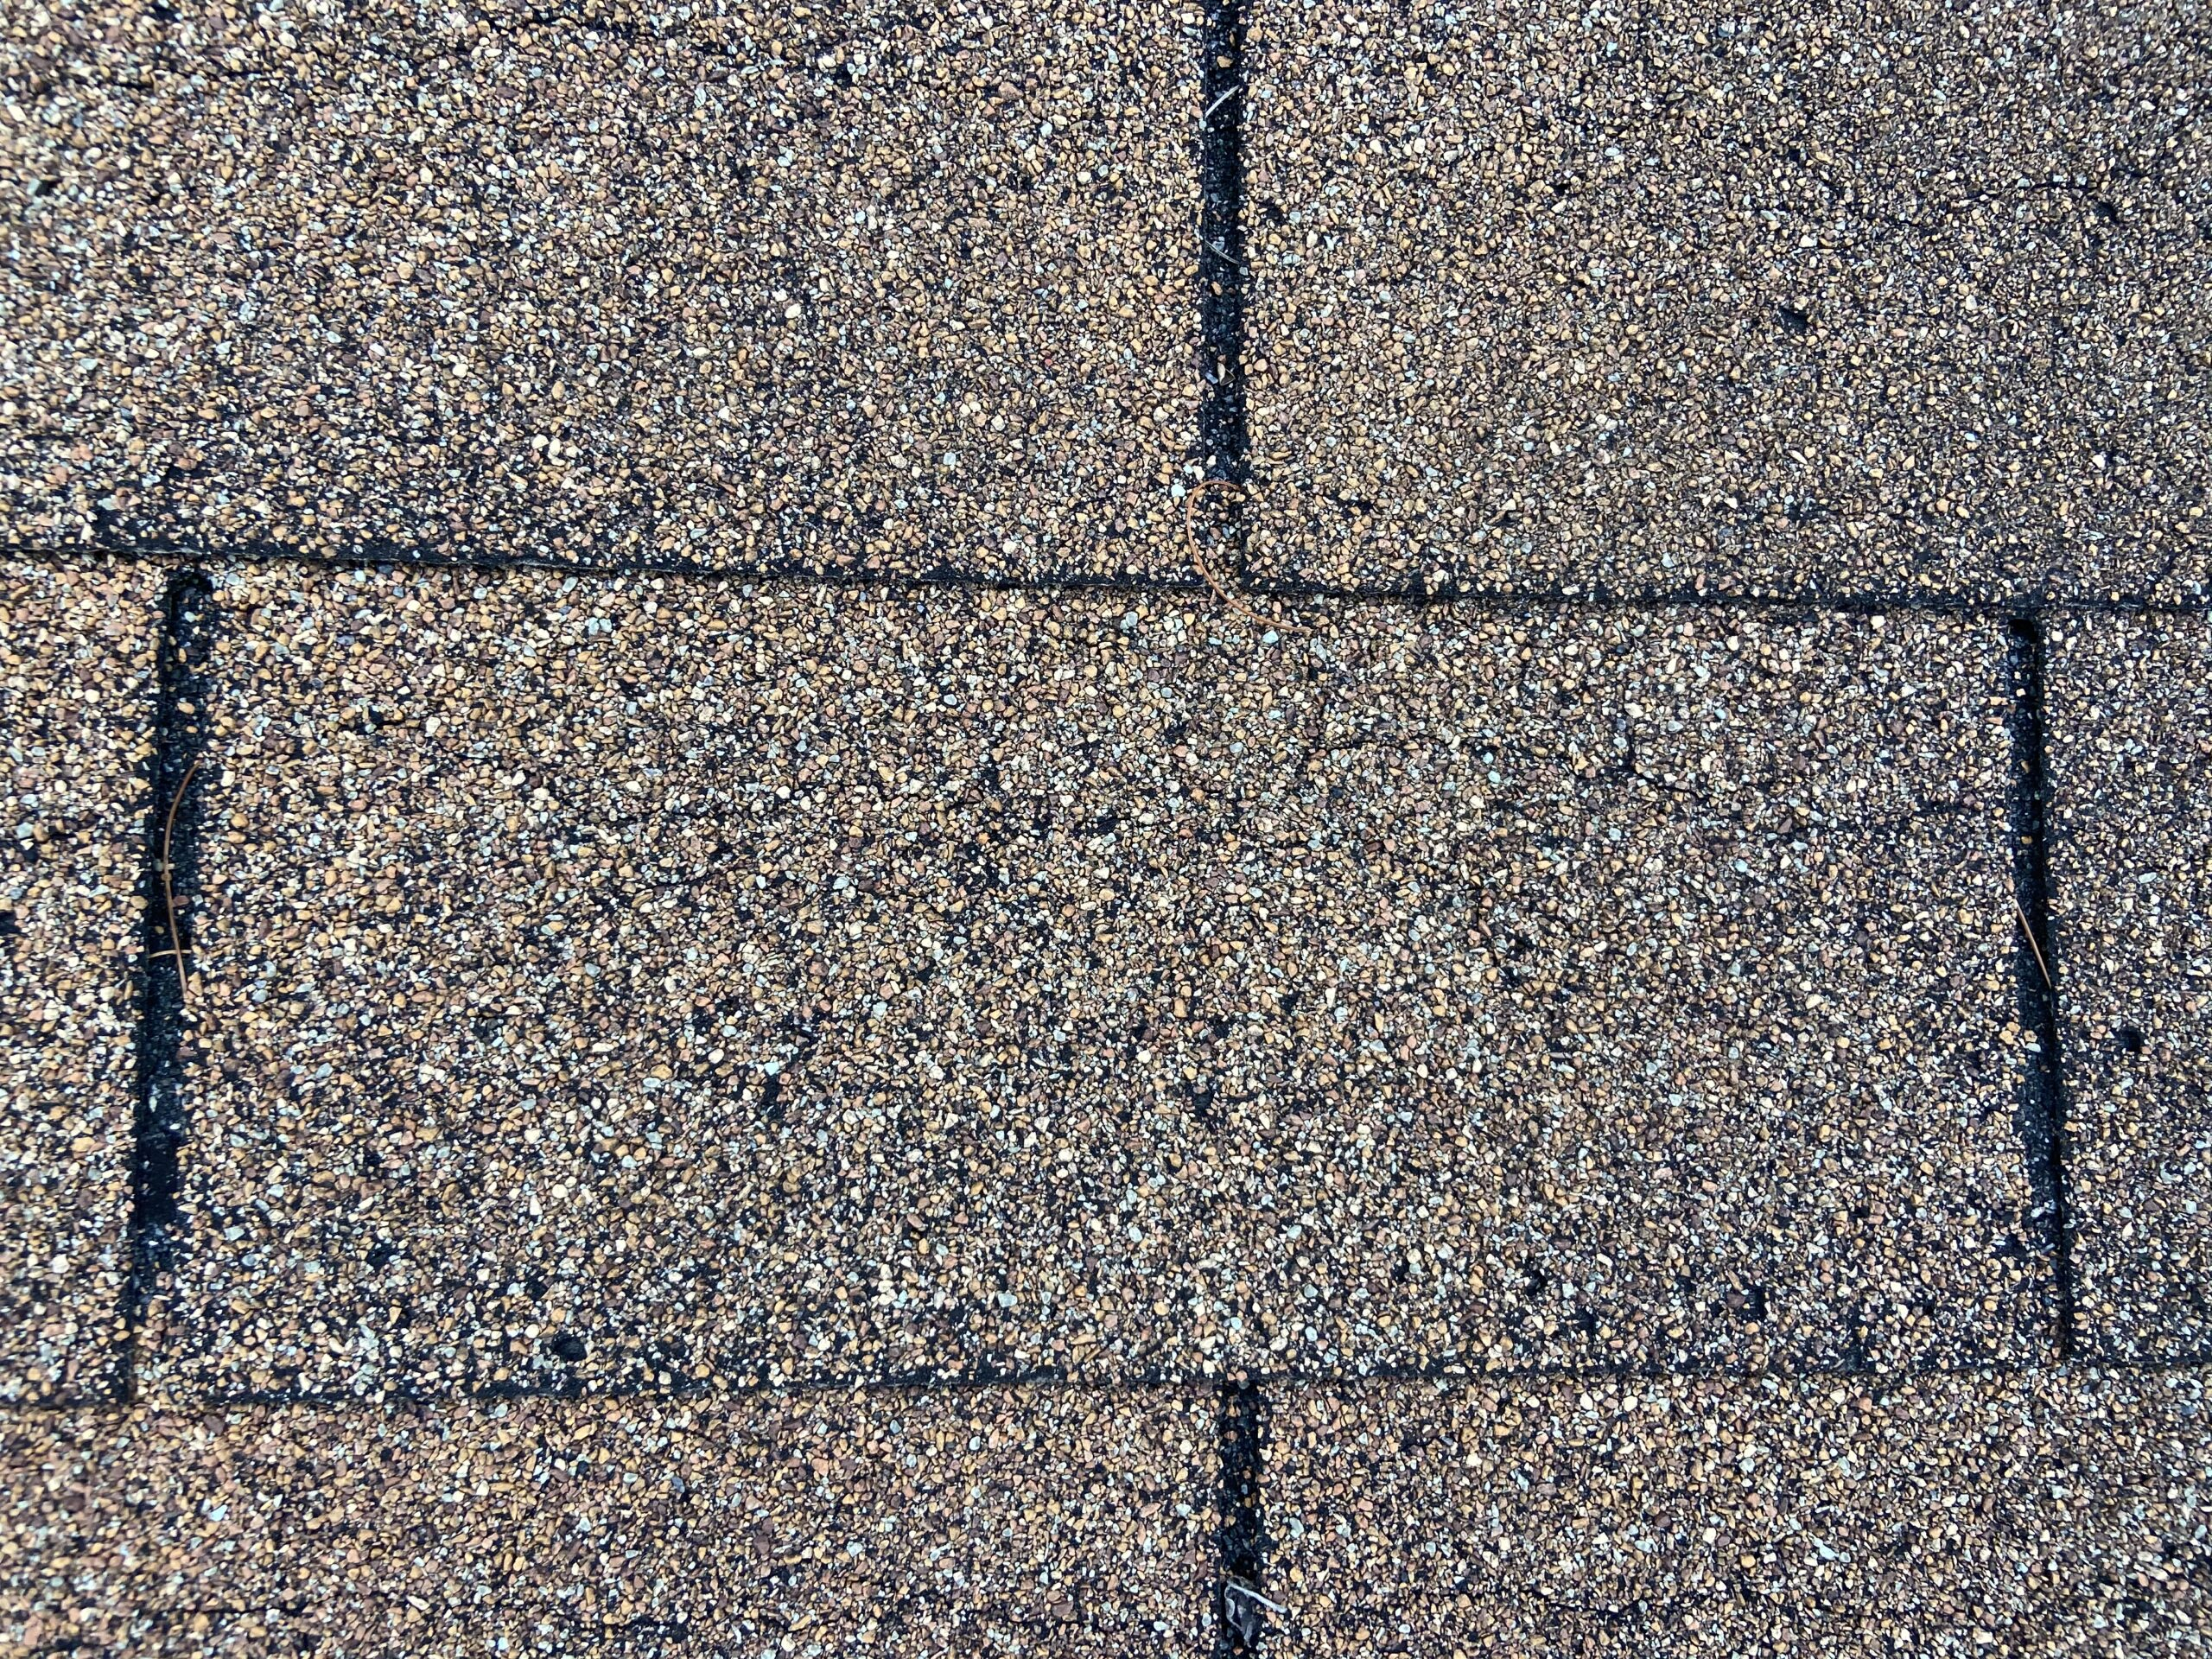 Shingles of Roof